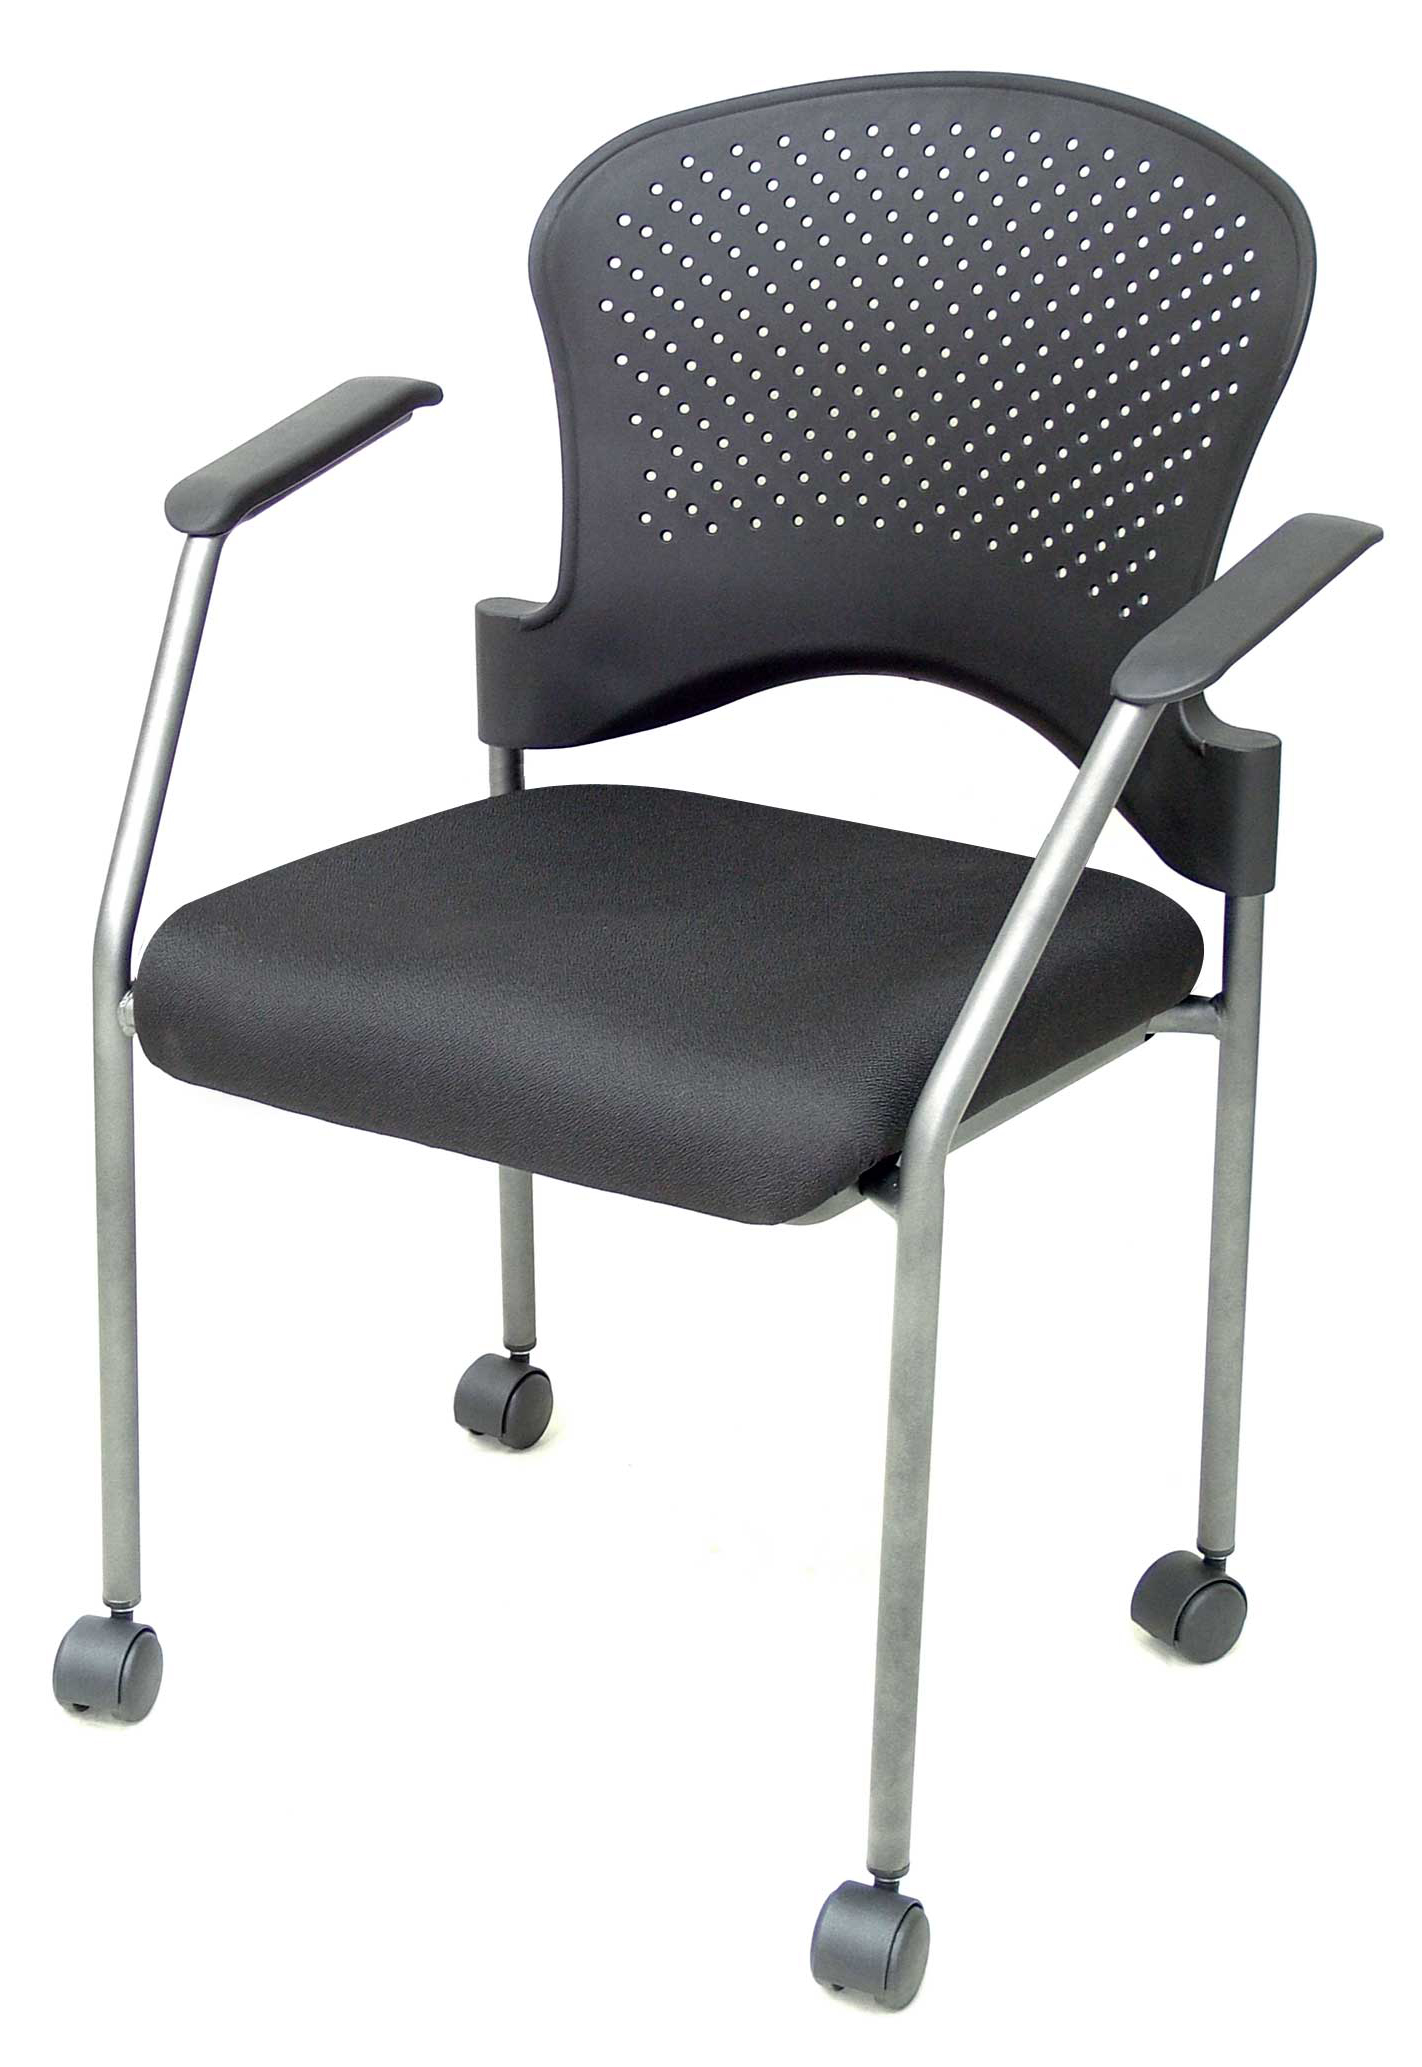 stackable chairs with arms discount banquet chair covers capri guest news 2894tg